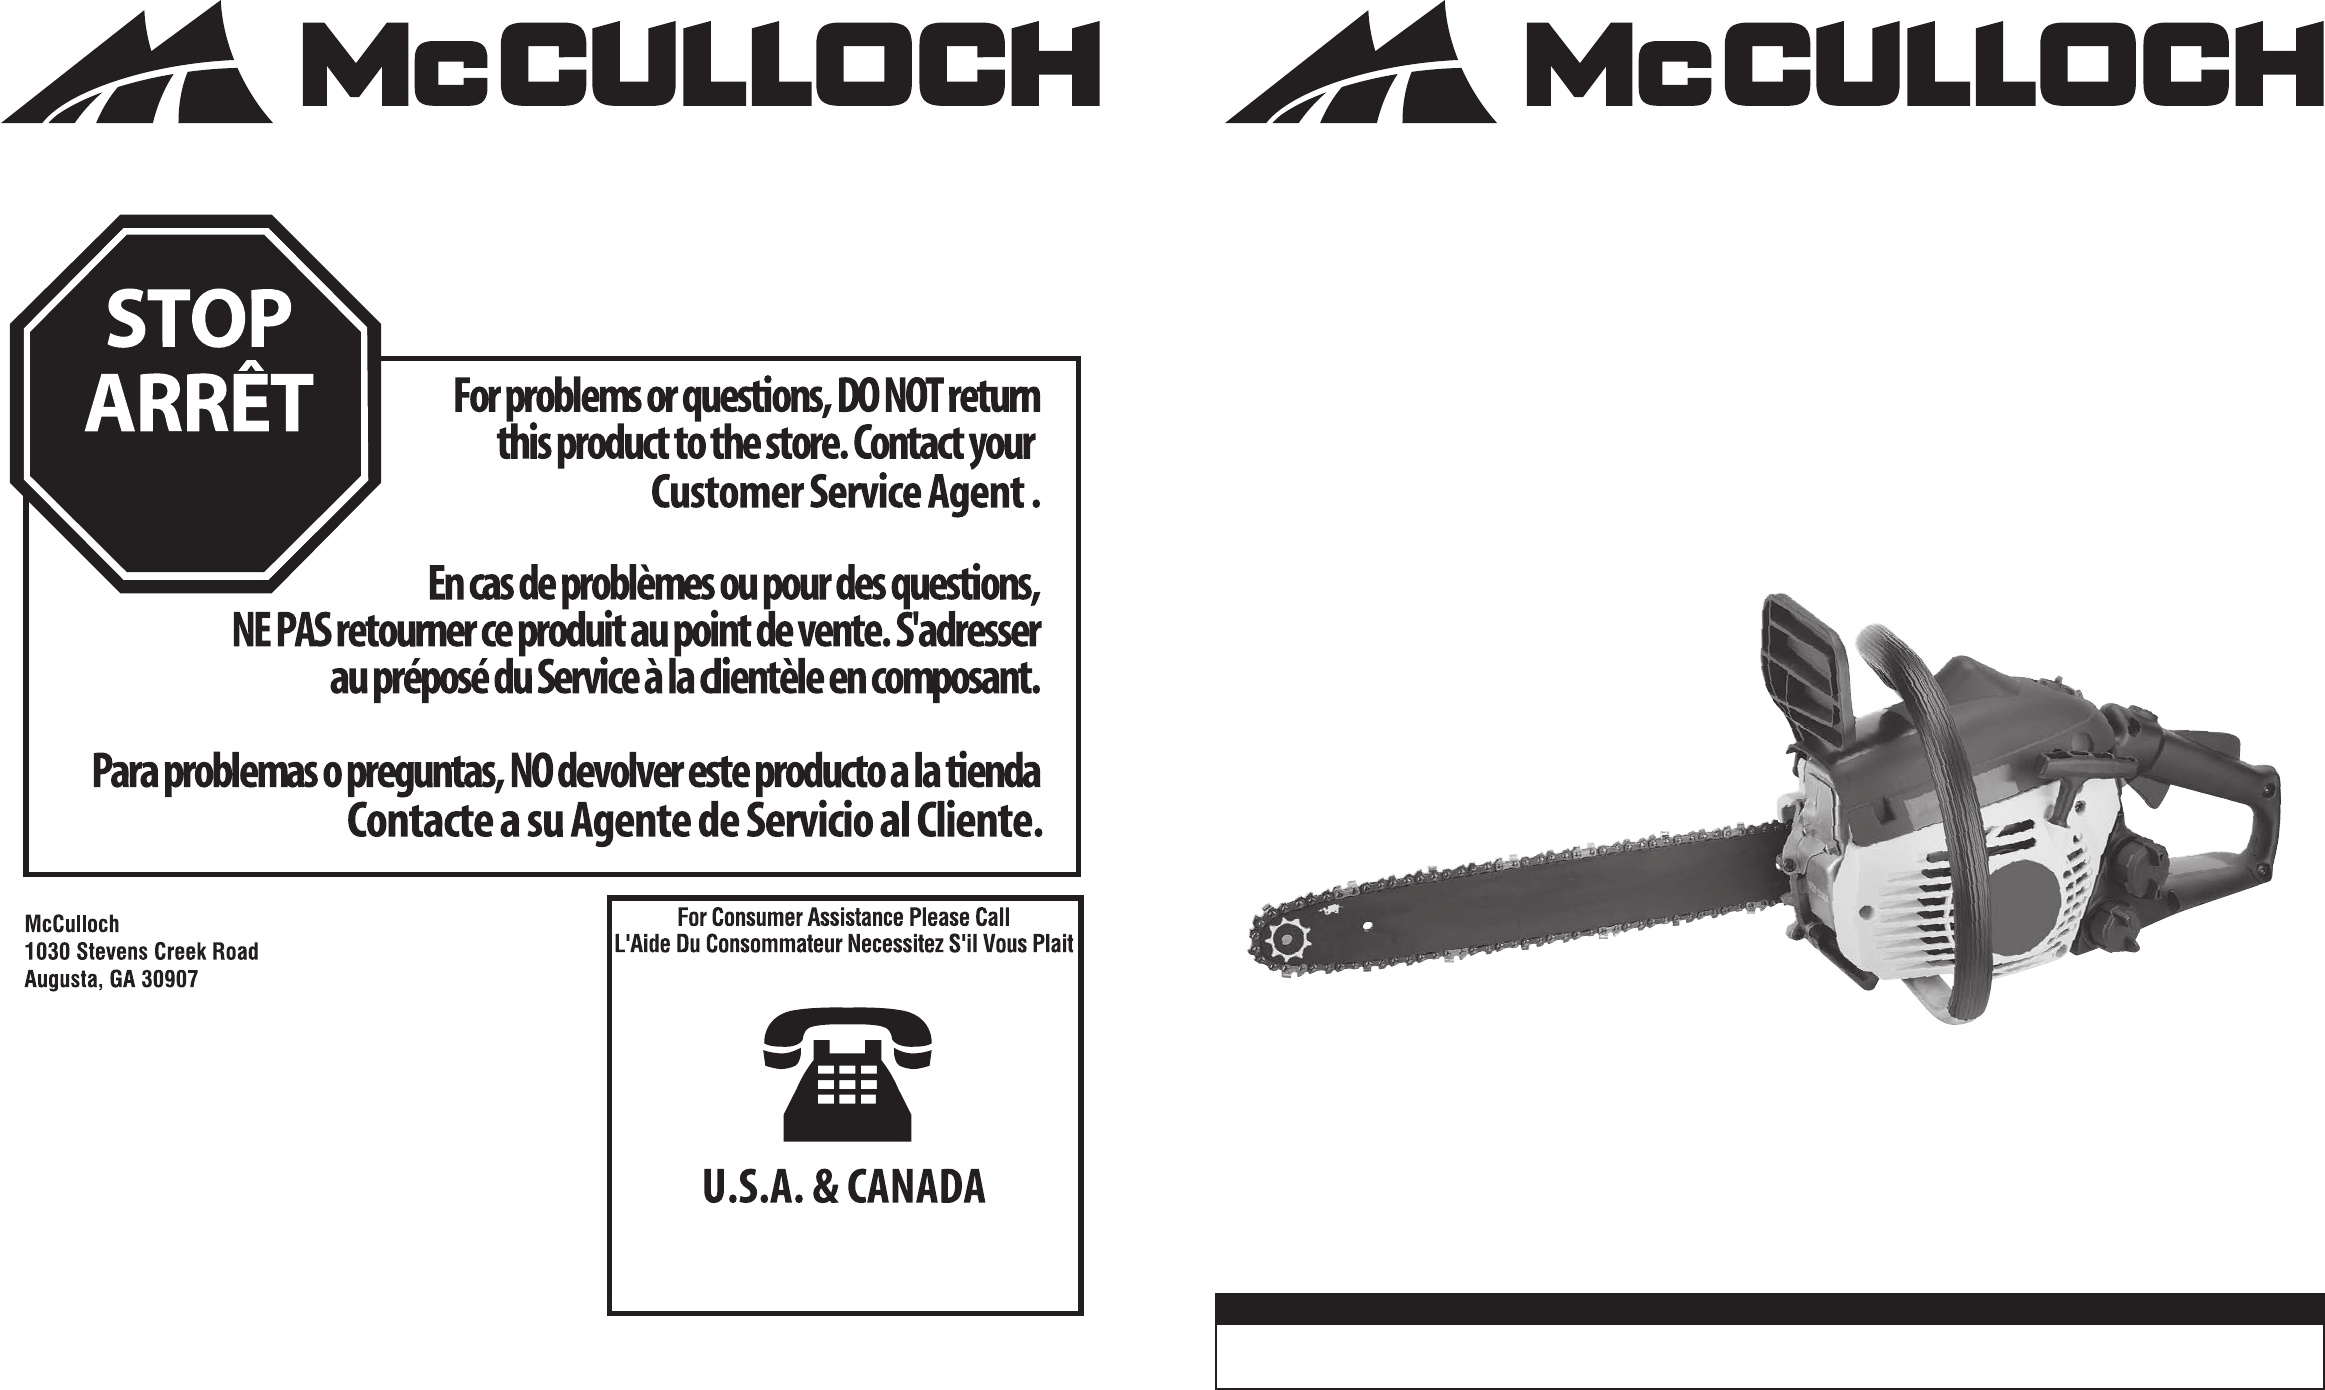 Mcculloch chainsaw mcc1635a user guide manualsonline greentooth Image collections